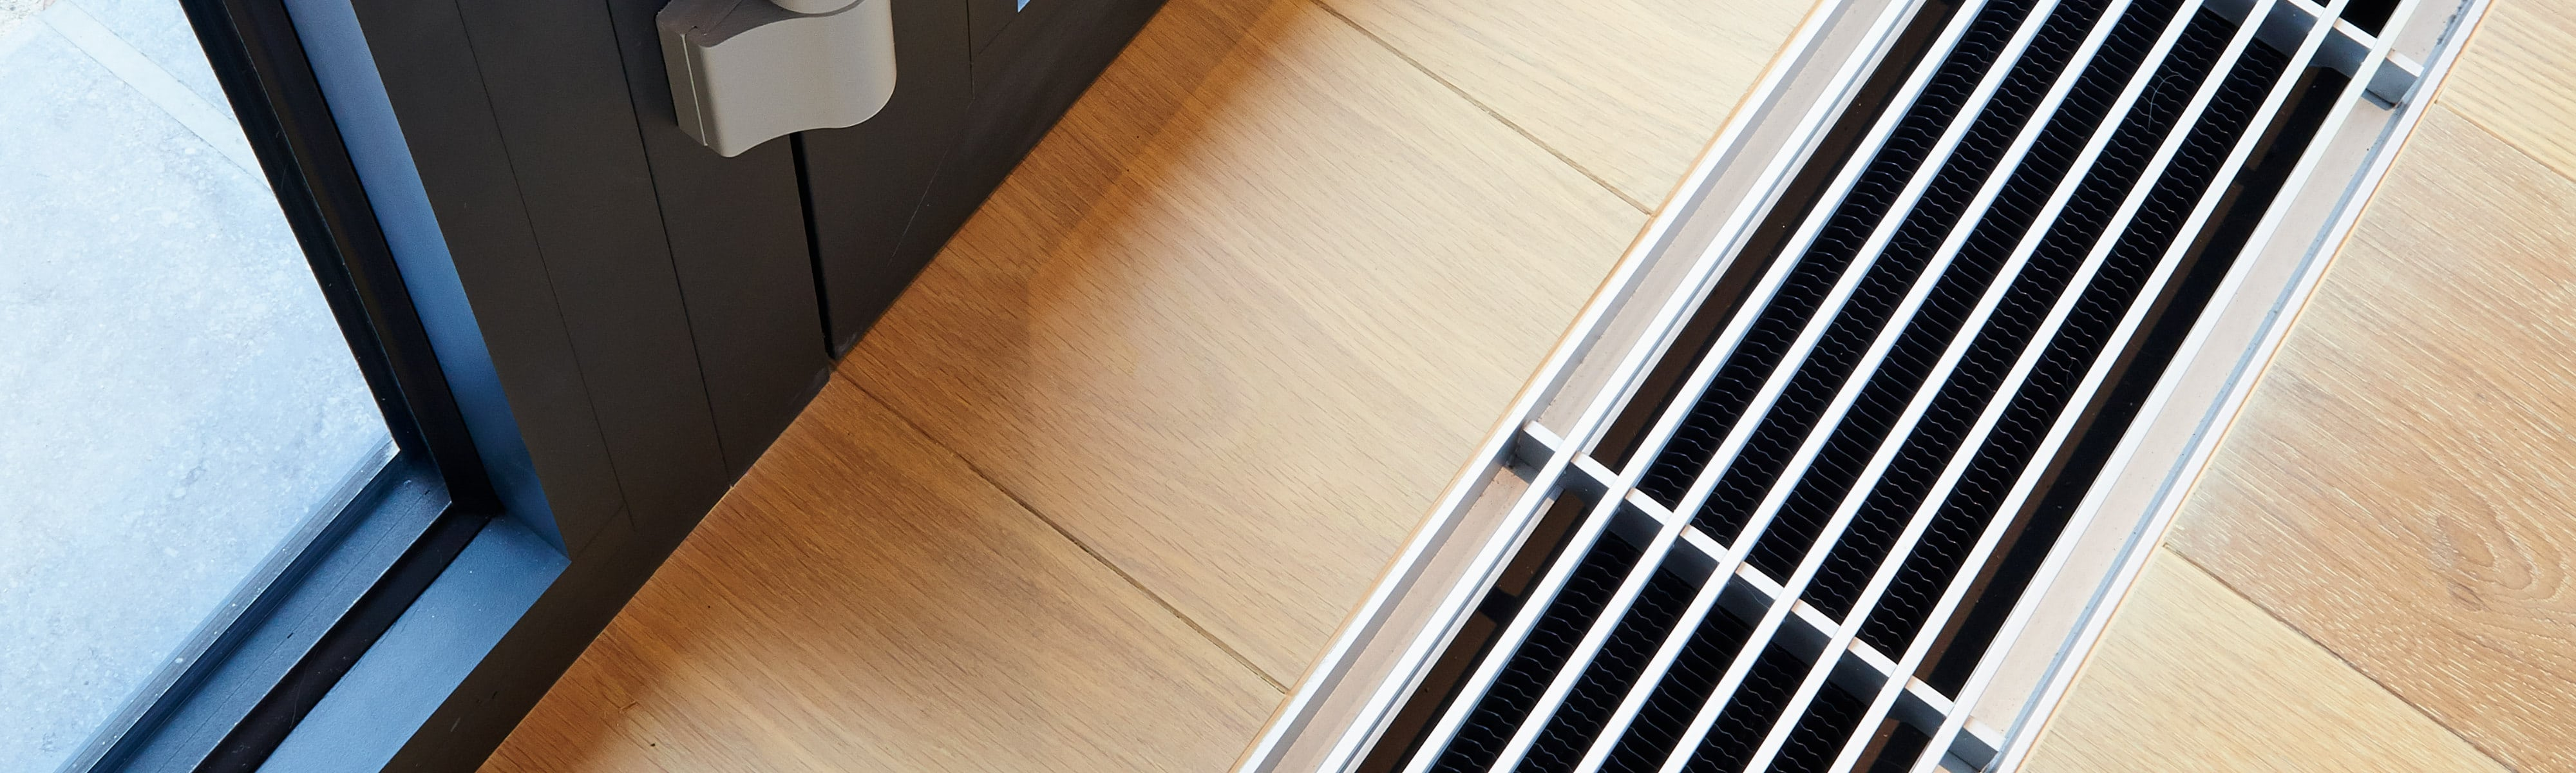 An air vent on a wooden floor.